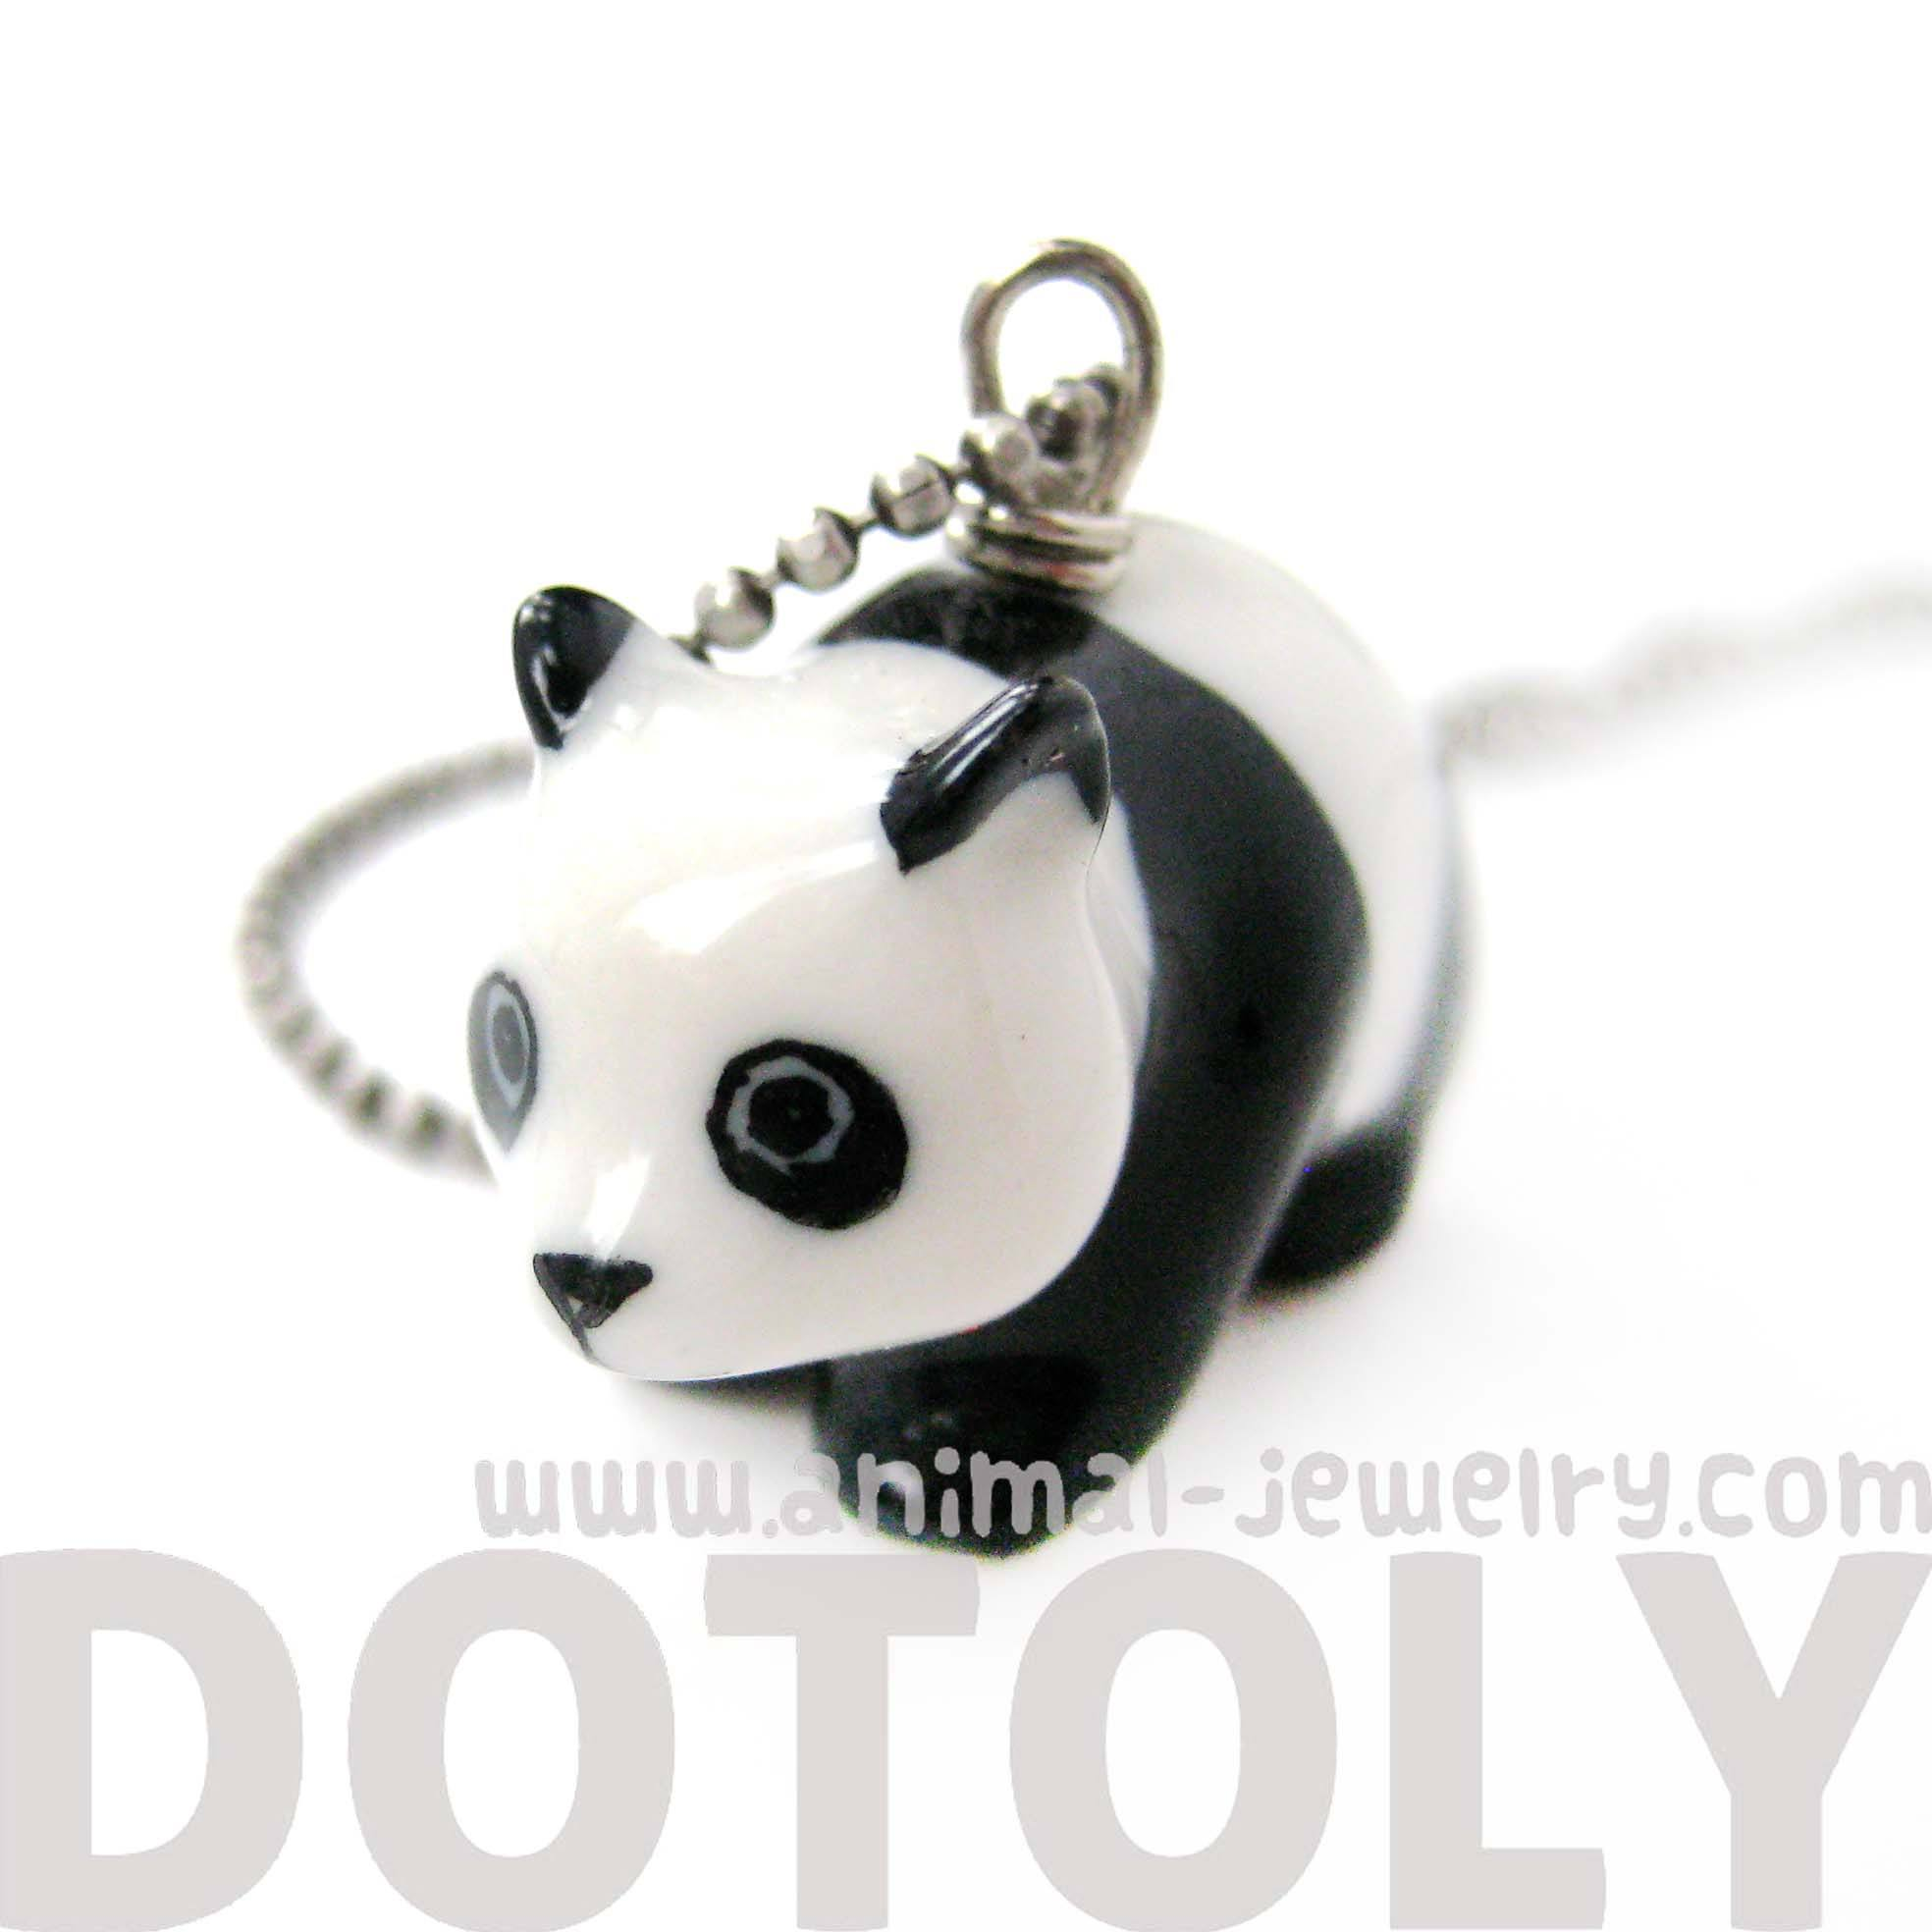 adorable-baby-panda-bear-porcelain-ceramic-animal-pendant-necklace-handmade